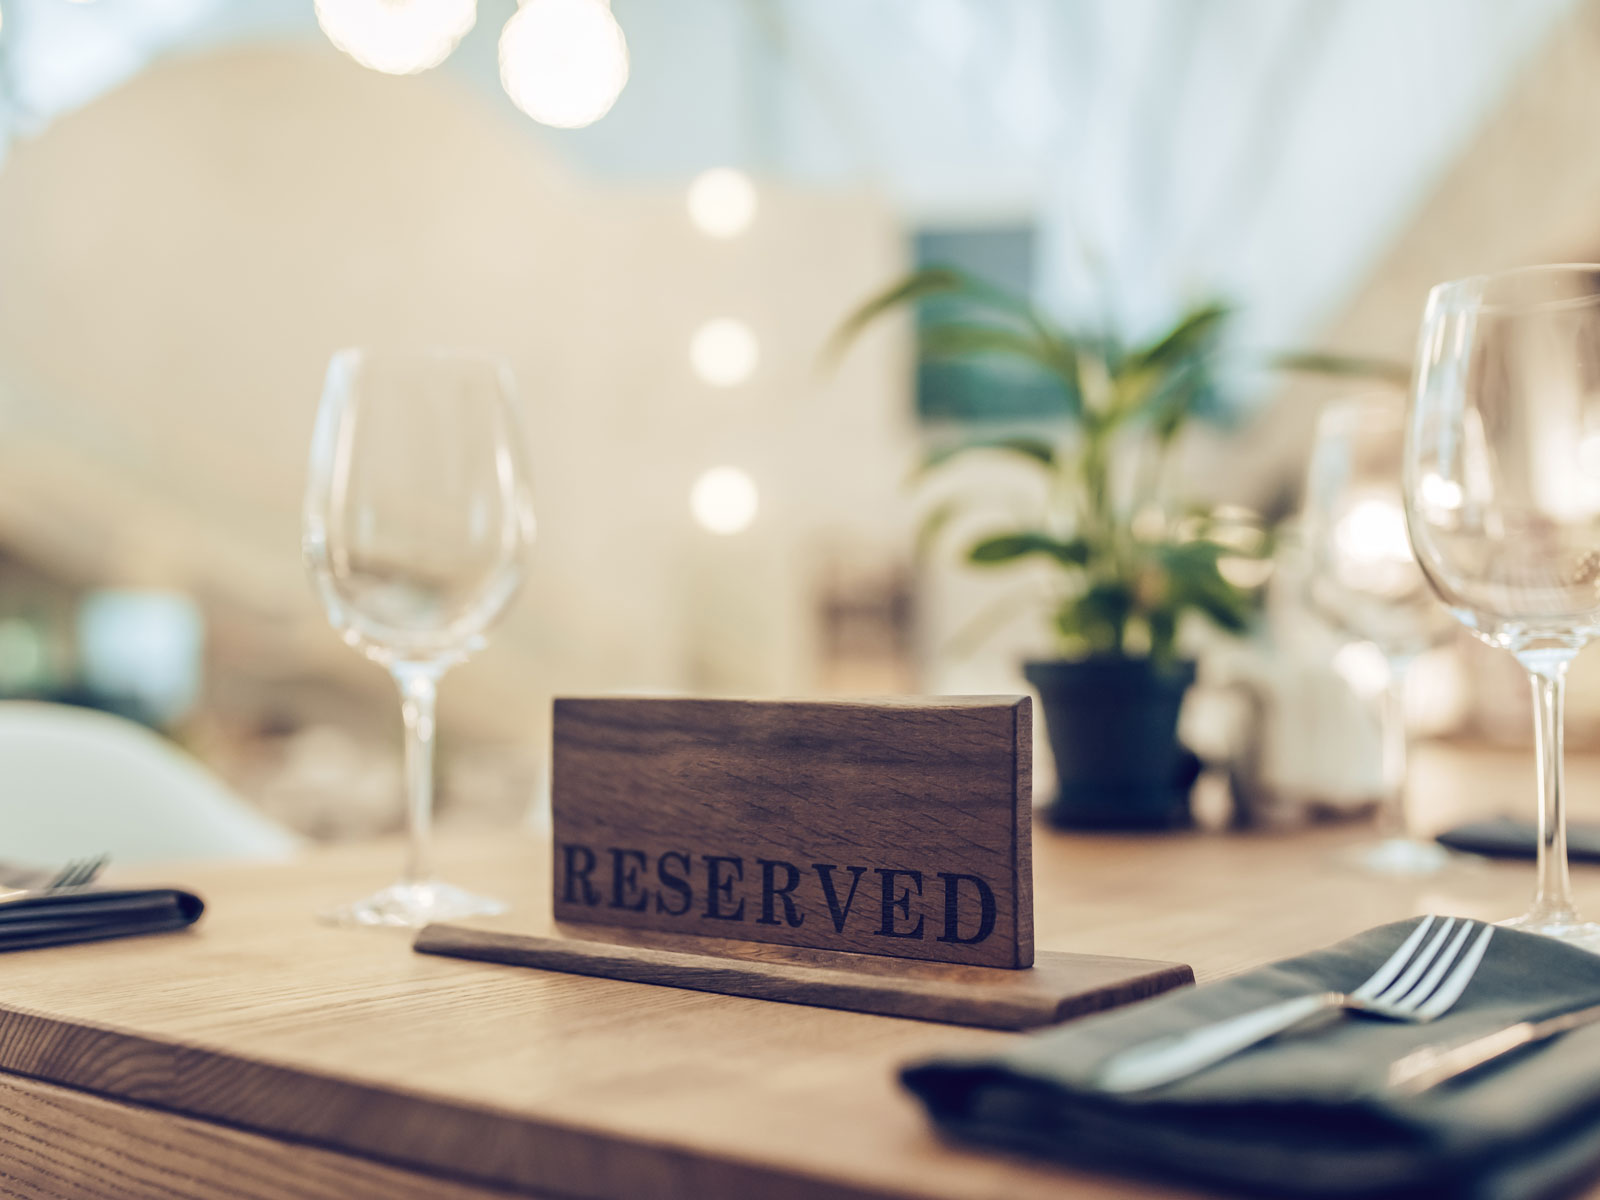 Should Restaurants Offer Gift Cards to Reimburse No-Show Reservation Fees?